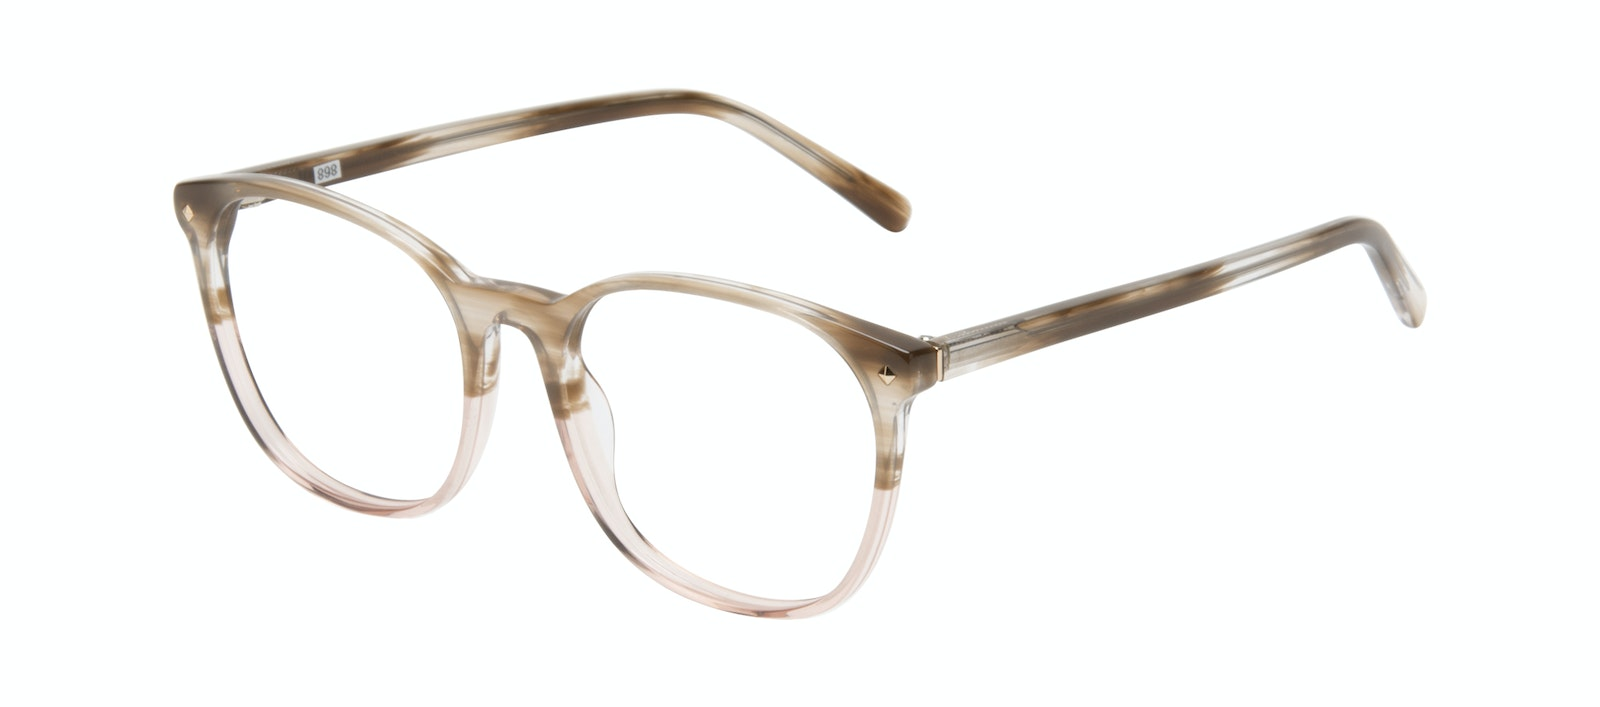 Affordable Fashion Glasses Round Eyeglasses Women Revive Rosewood Tilt